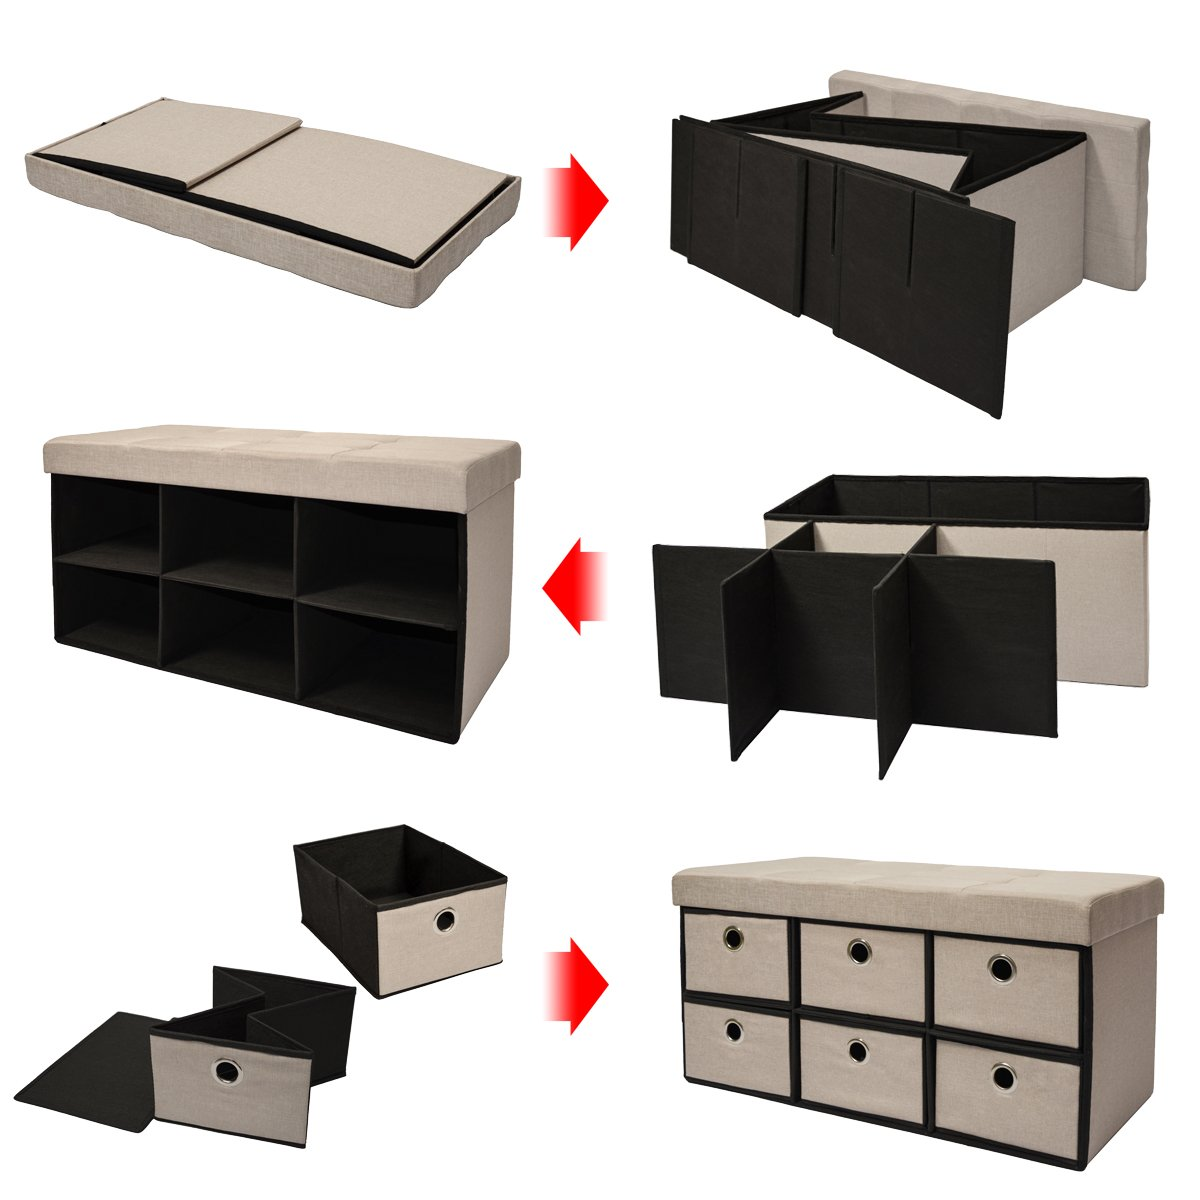 DuneDesign folding Ottoman 76x38x38cm 6 drawers 80L rectangular Storage Bench upholstered lid seat for 2 container to store objects Dark Brown